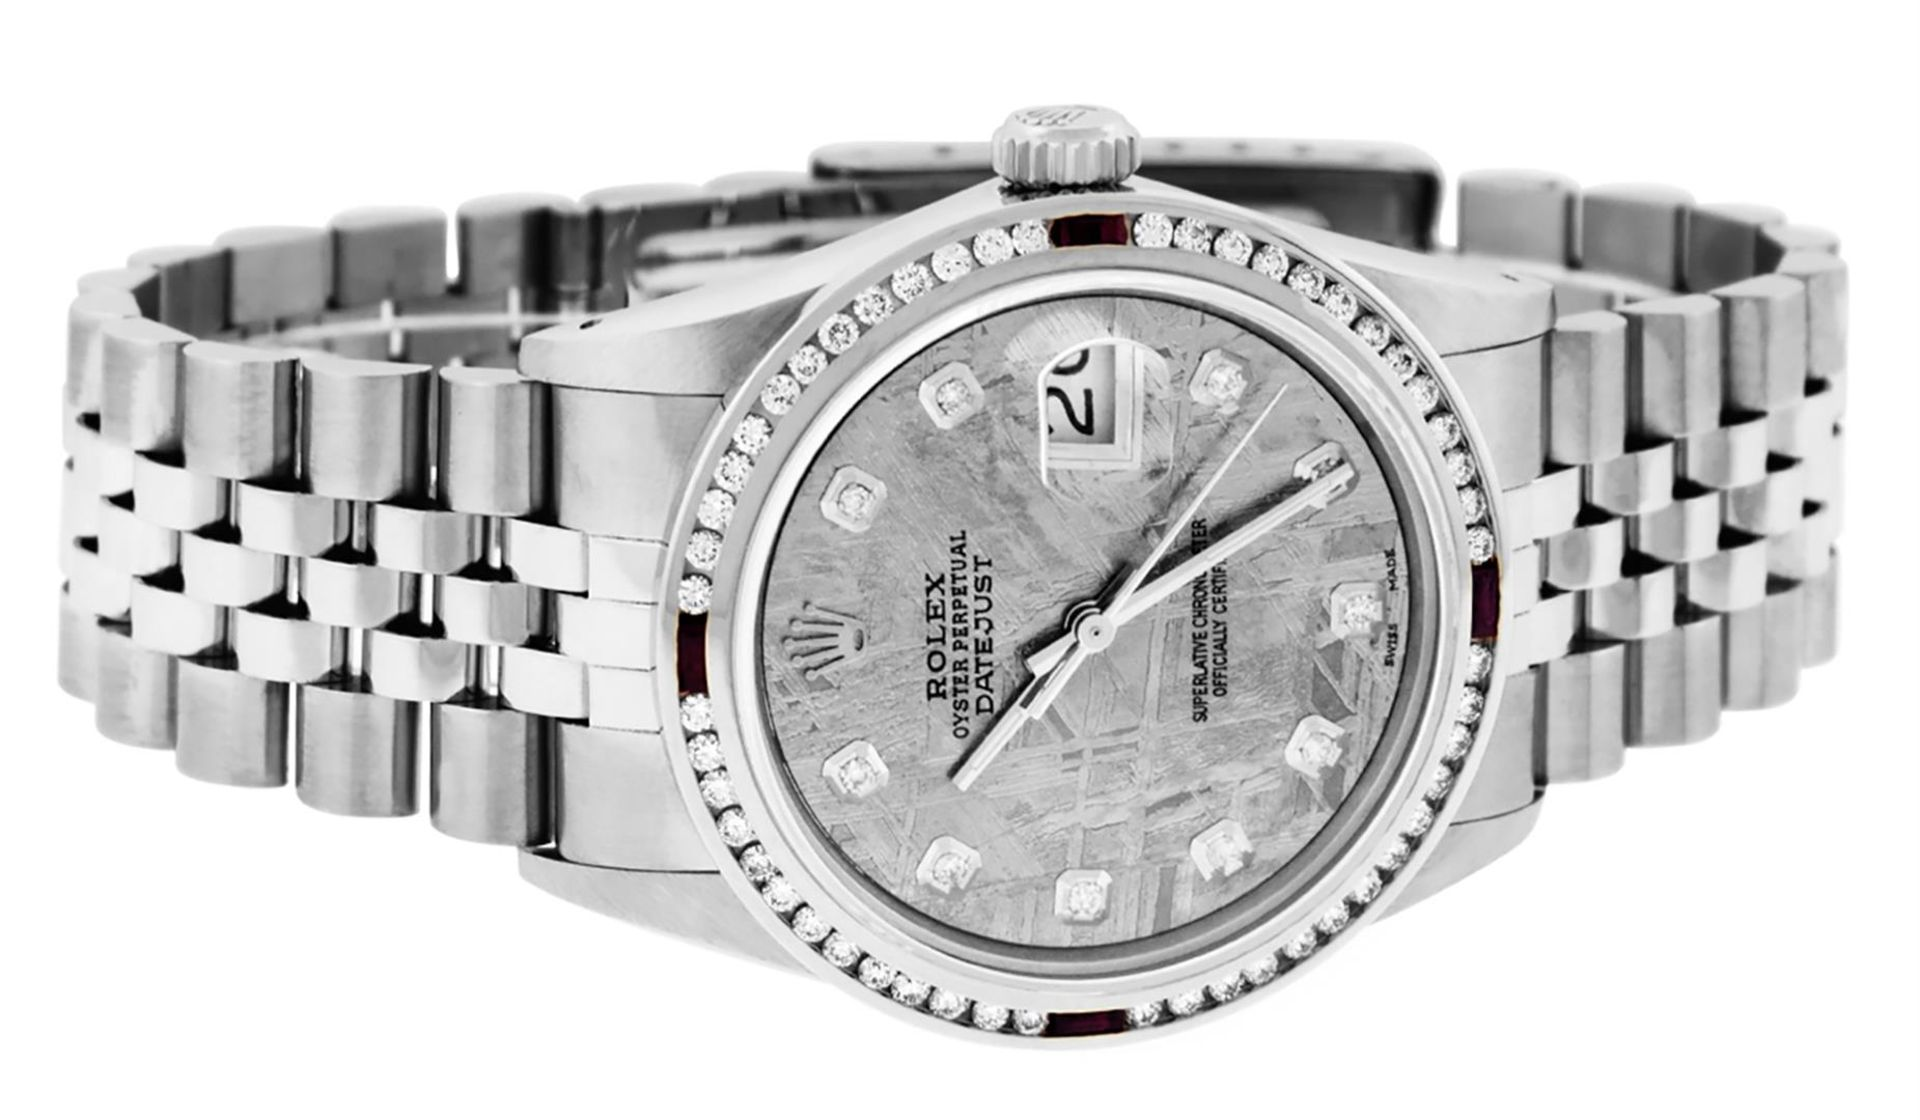 Rolex Mens SS Meteorite Diamond & Ruby Channel Set Diamond Datejust 36MM - Image 8 of 8